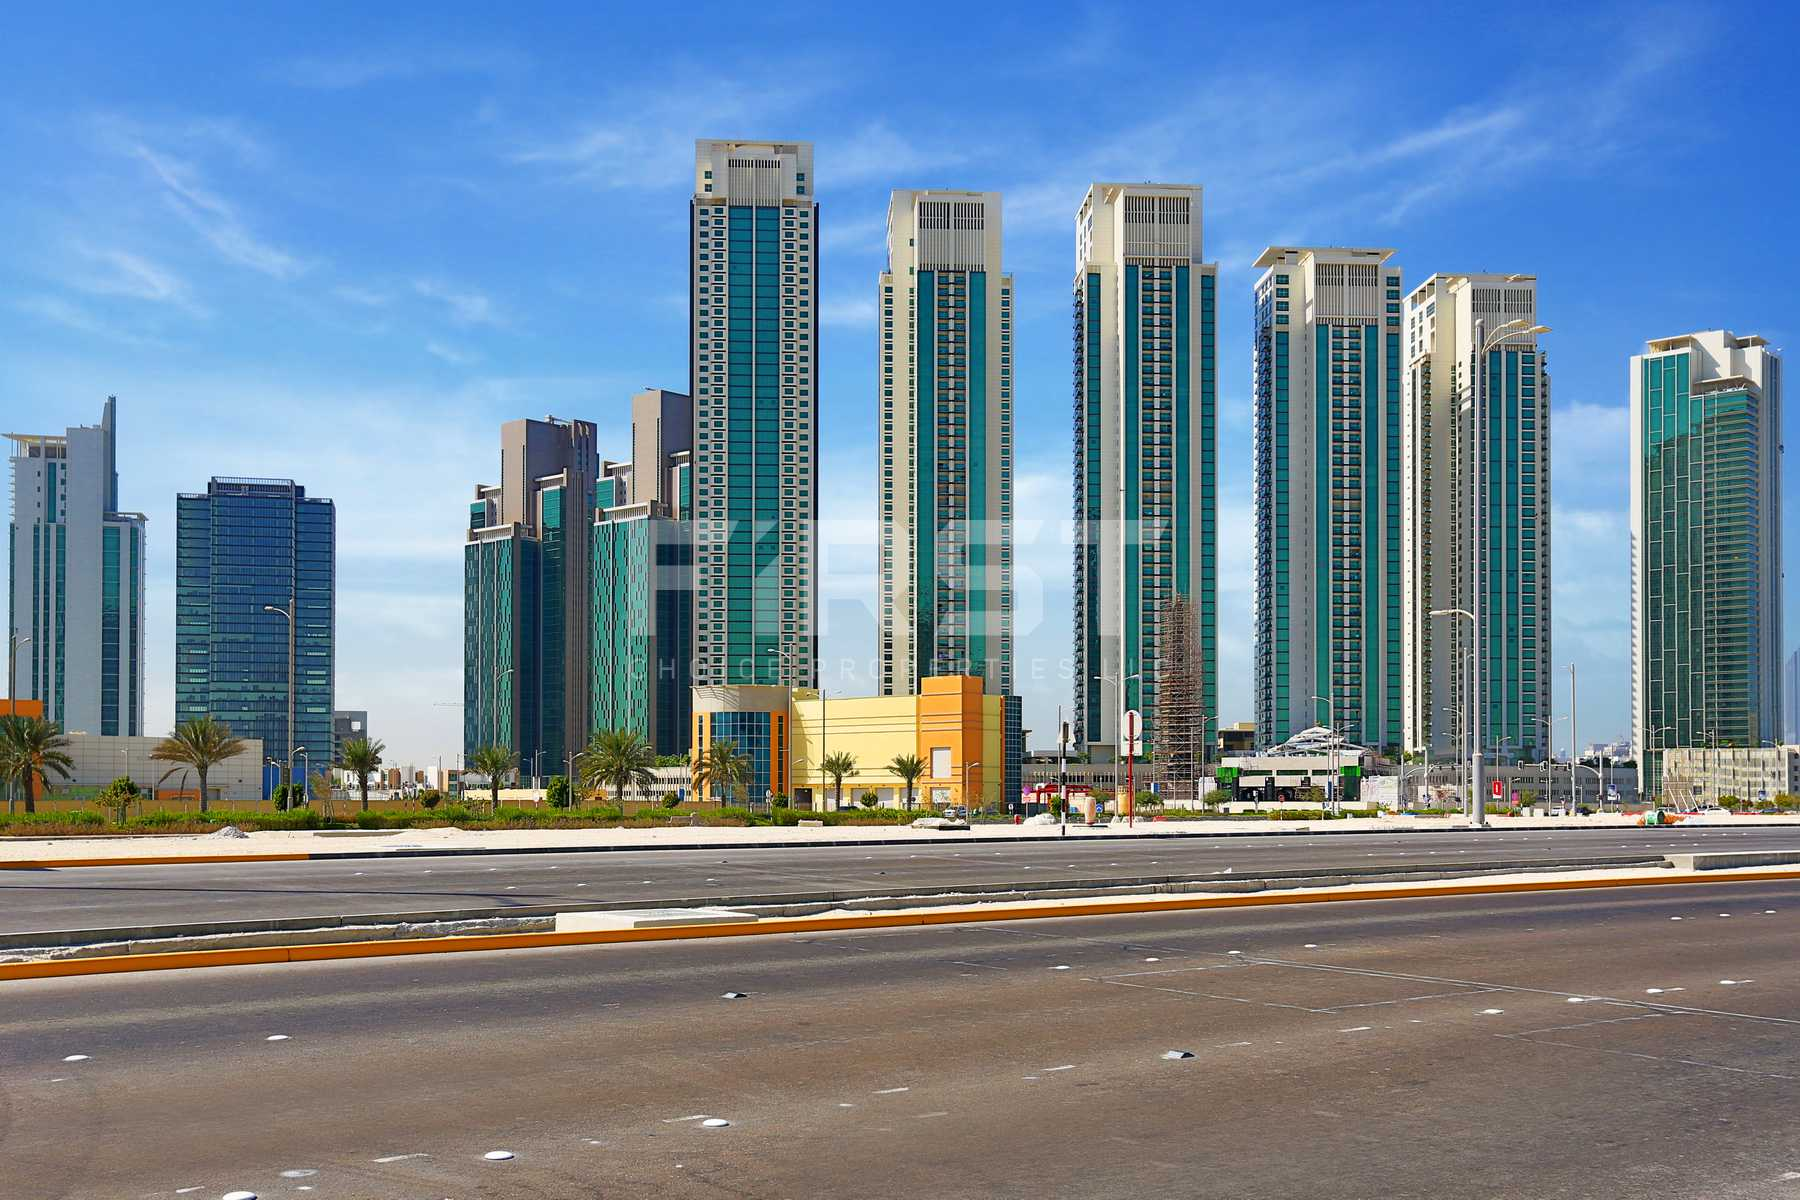 External Photo of Marina Square Al Reem Island Abu Dhabi UAE (71).jpg